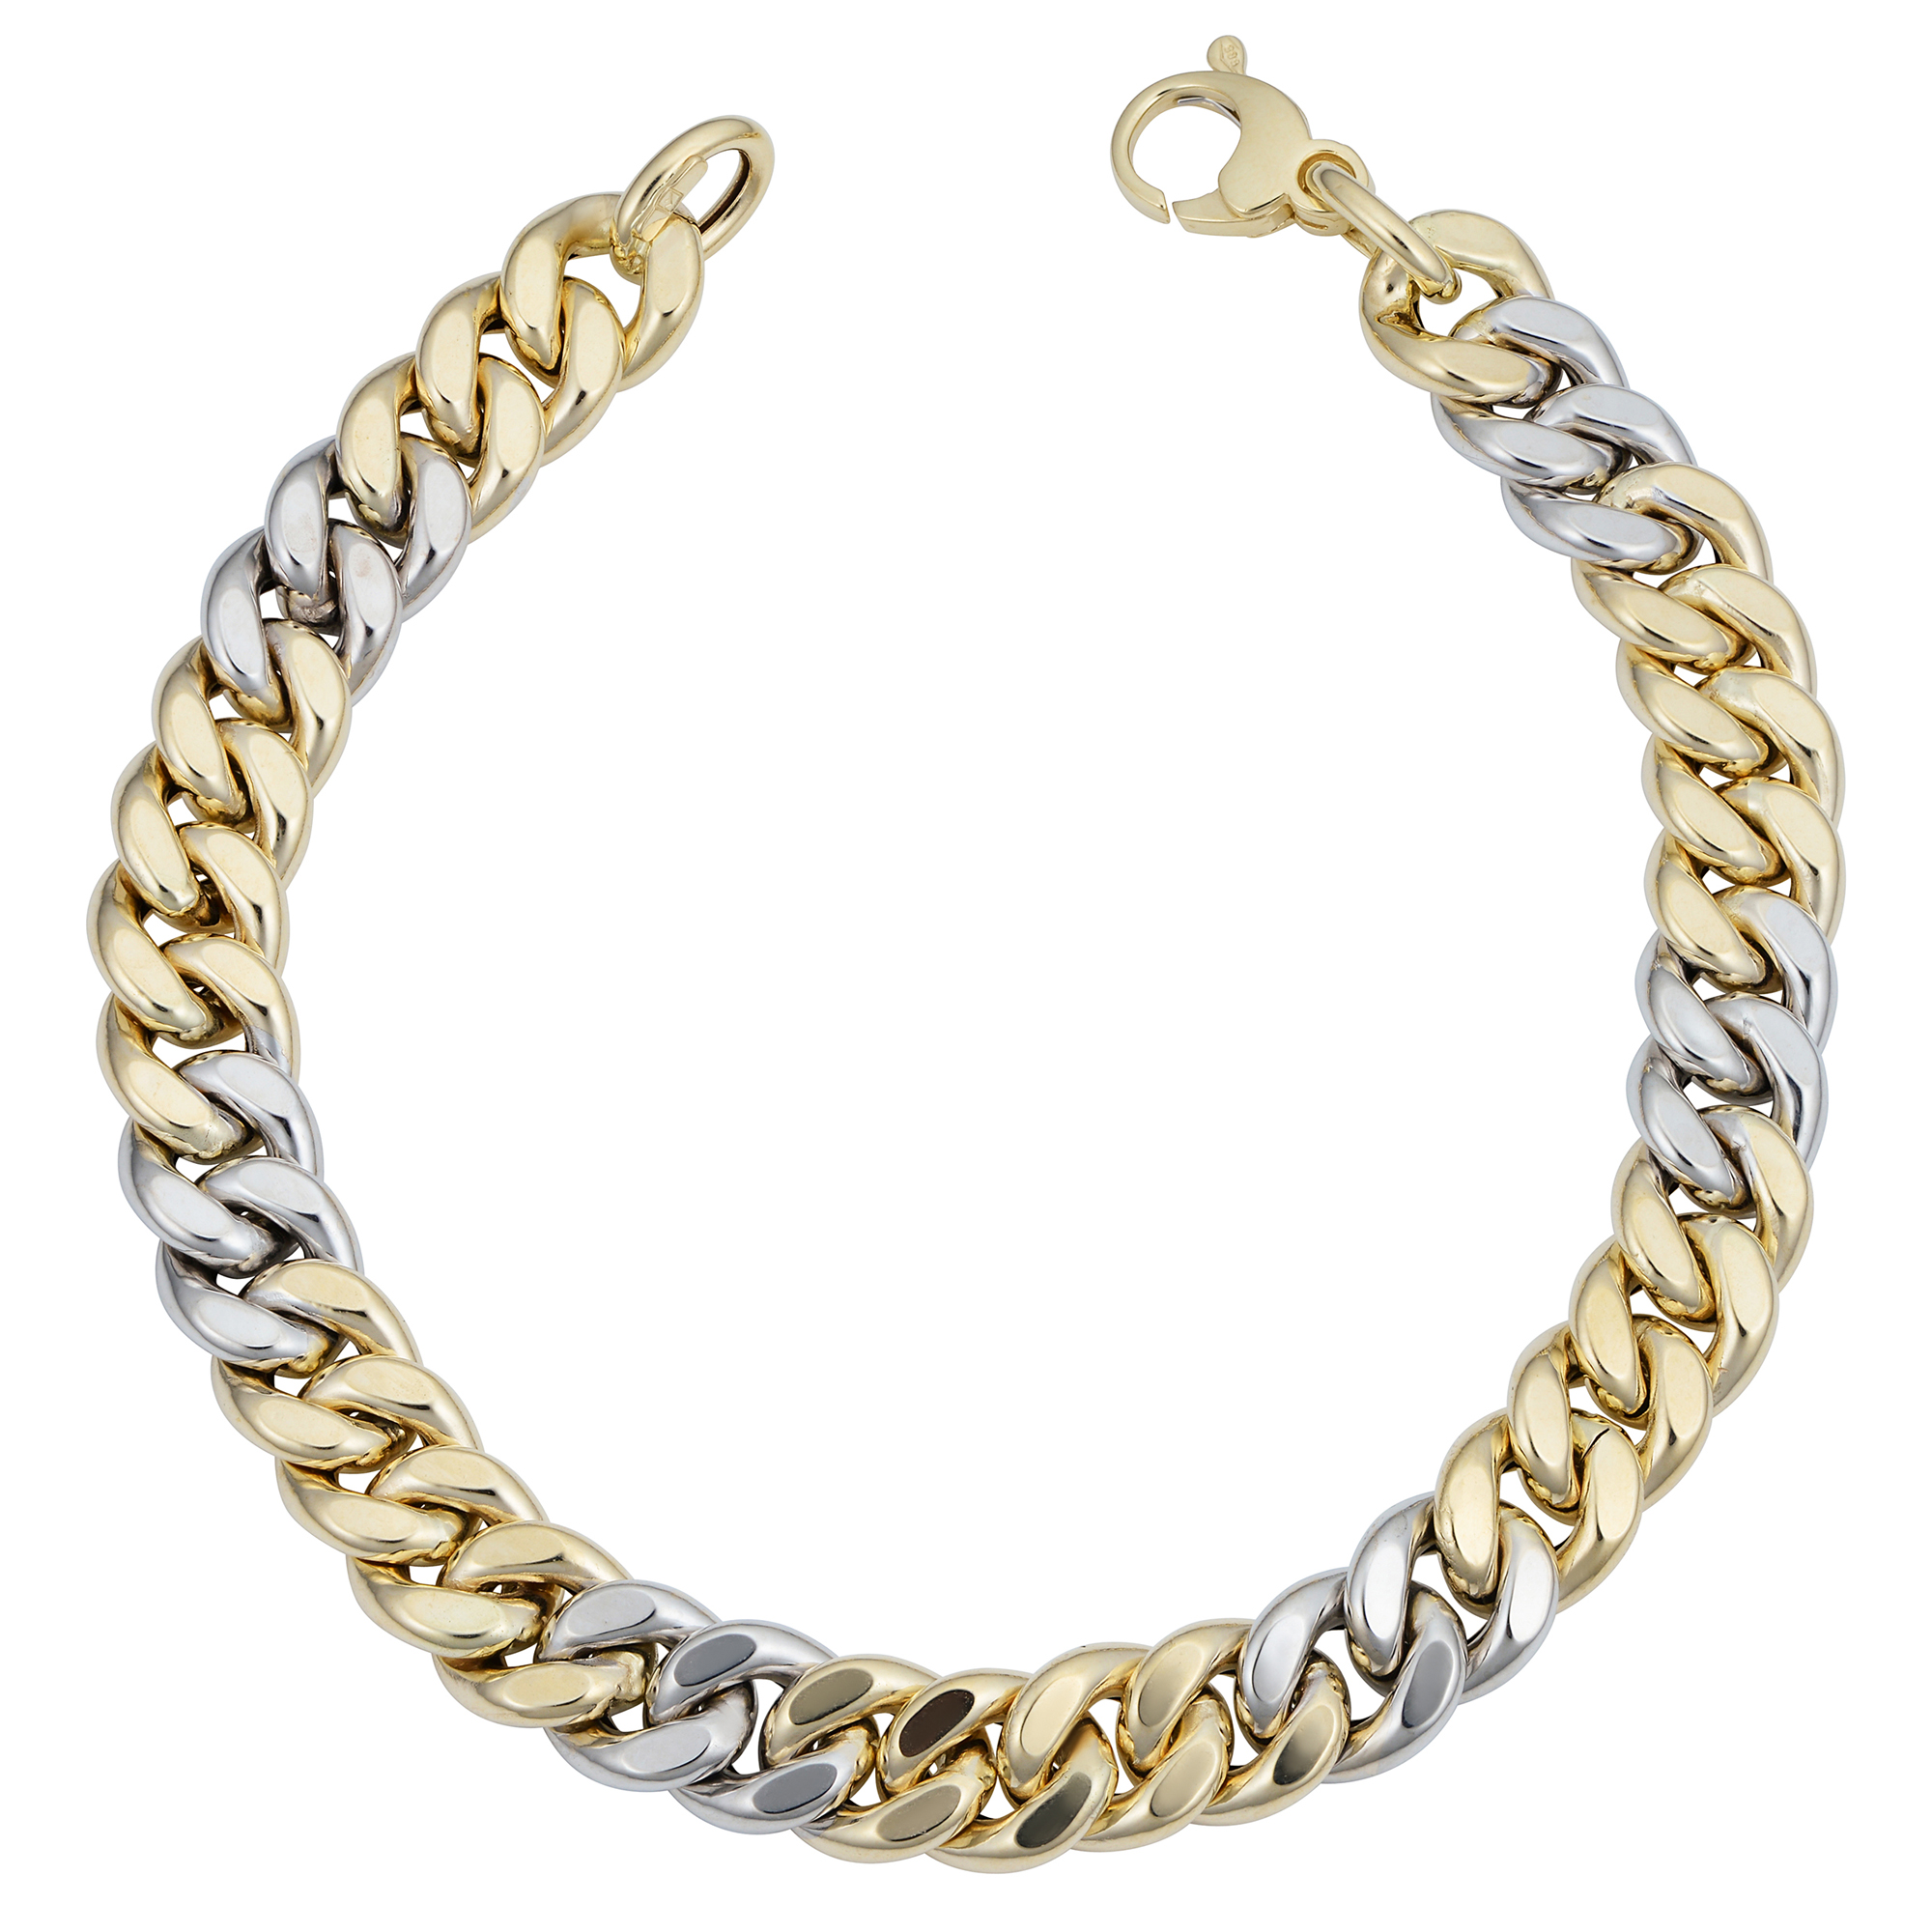 2c20175290730 Details about 14k Yellow And White Gold Miami Cuban Curb Hollow Link Mens  Bracelet, 8.5